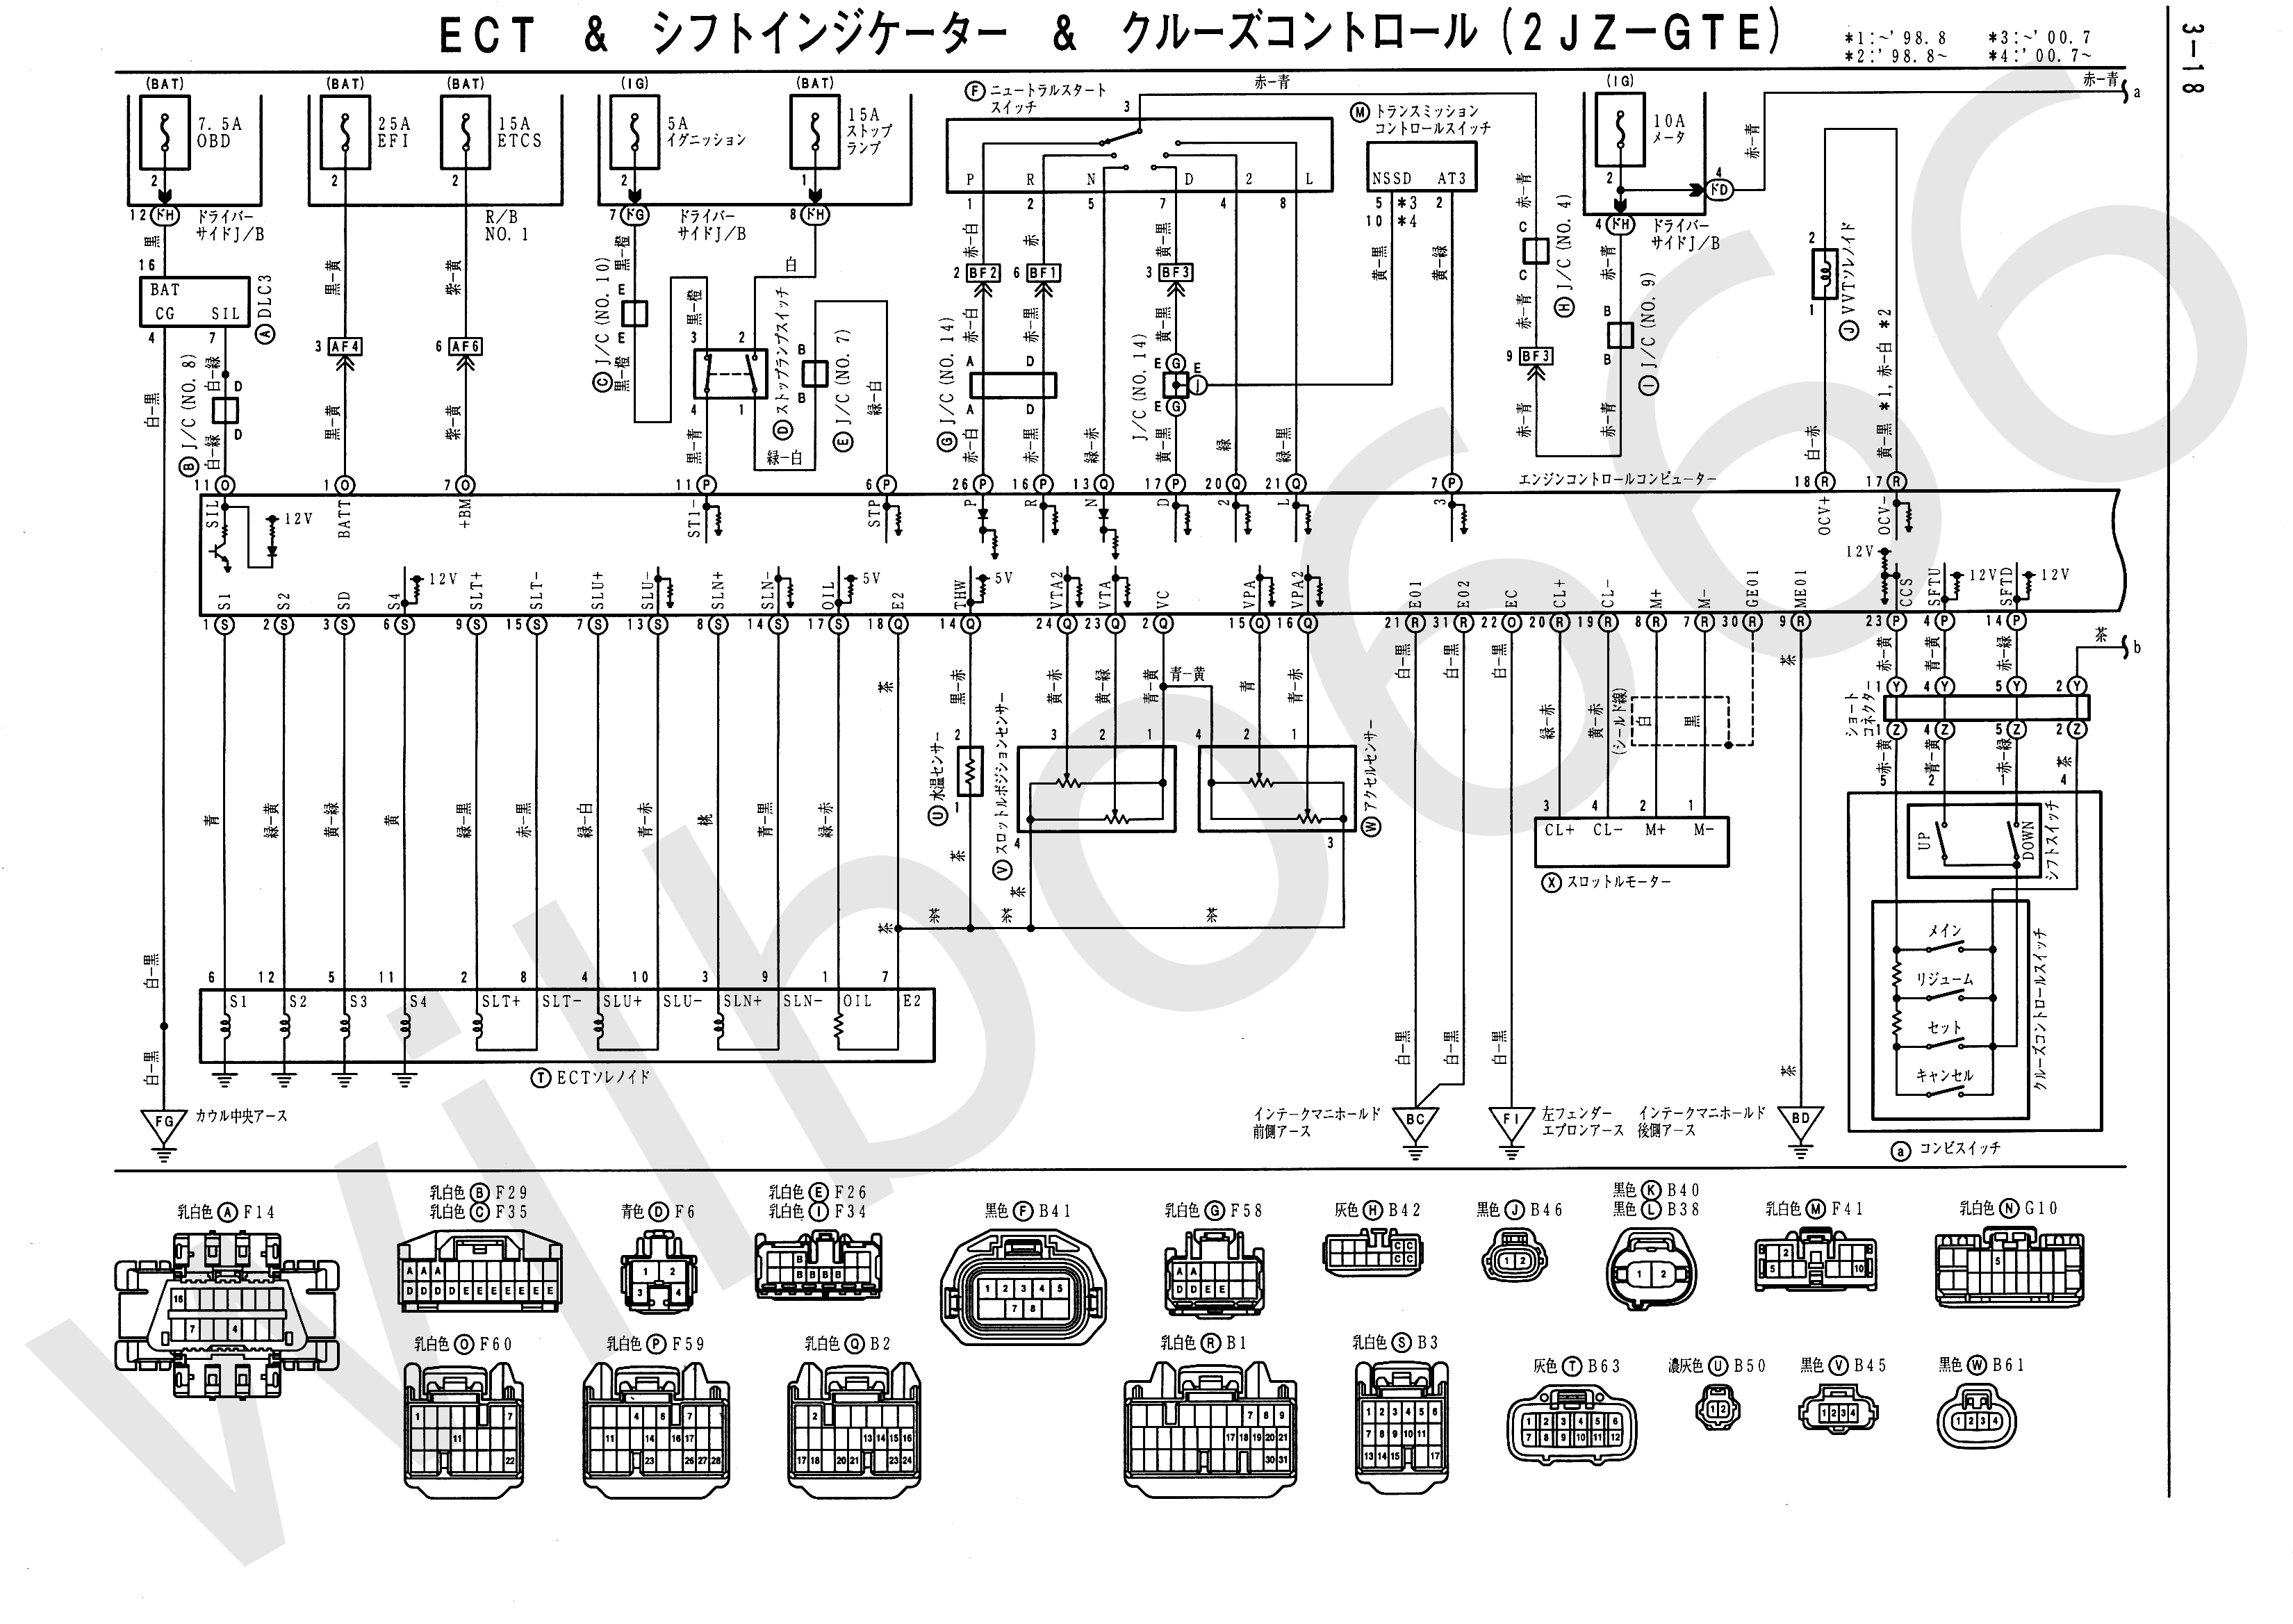 Index8 additionally 1jz Gte Engine Wiring Diagram Various Jza70 And Diagrams Perfecttuning Lovely Ecu On 1jz likewise  as well 1jz Engine Room Diagram moreover S14 Wiring Diagram. on 2jz ecu wiring diagram